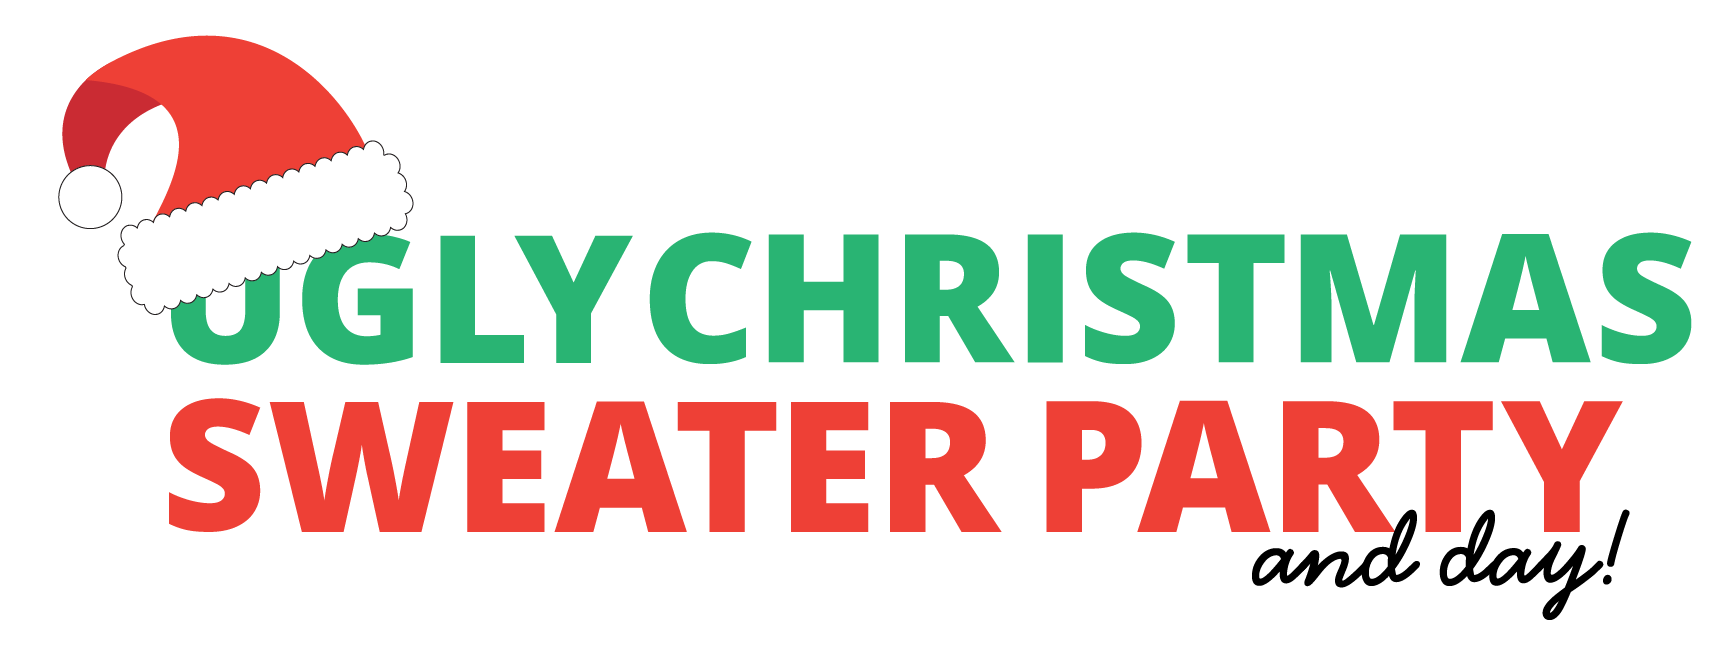 The Ugly Christmas Sweater Party Kansas City S Wooliest Sweateriest Bash Of The Season